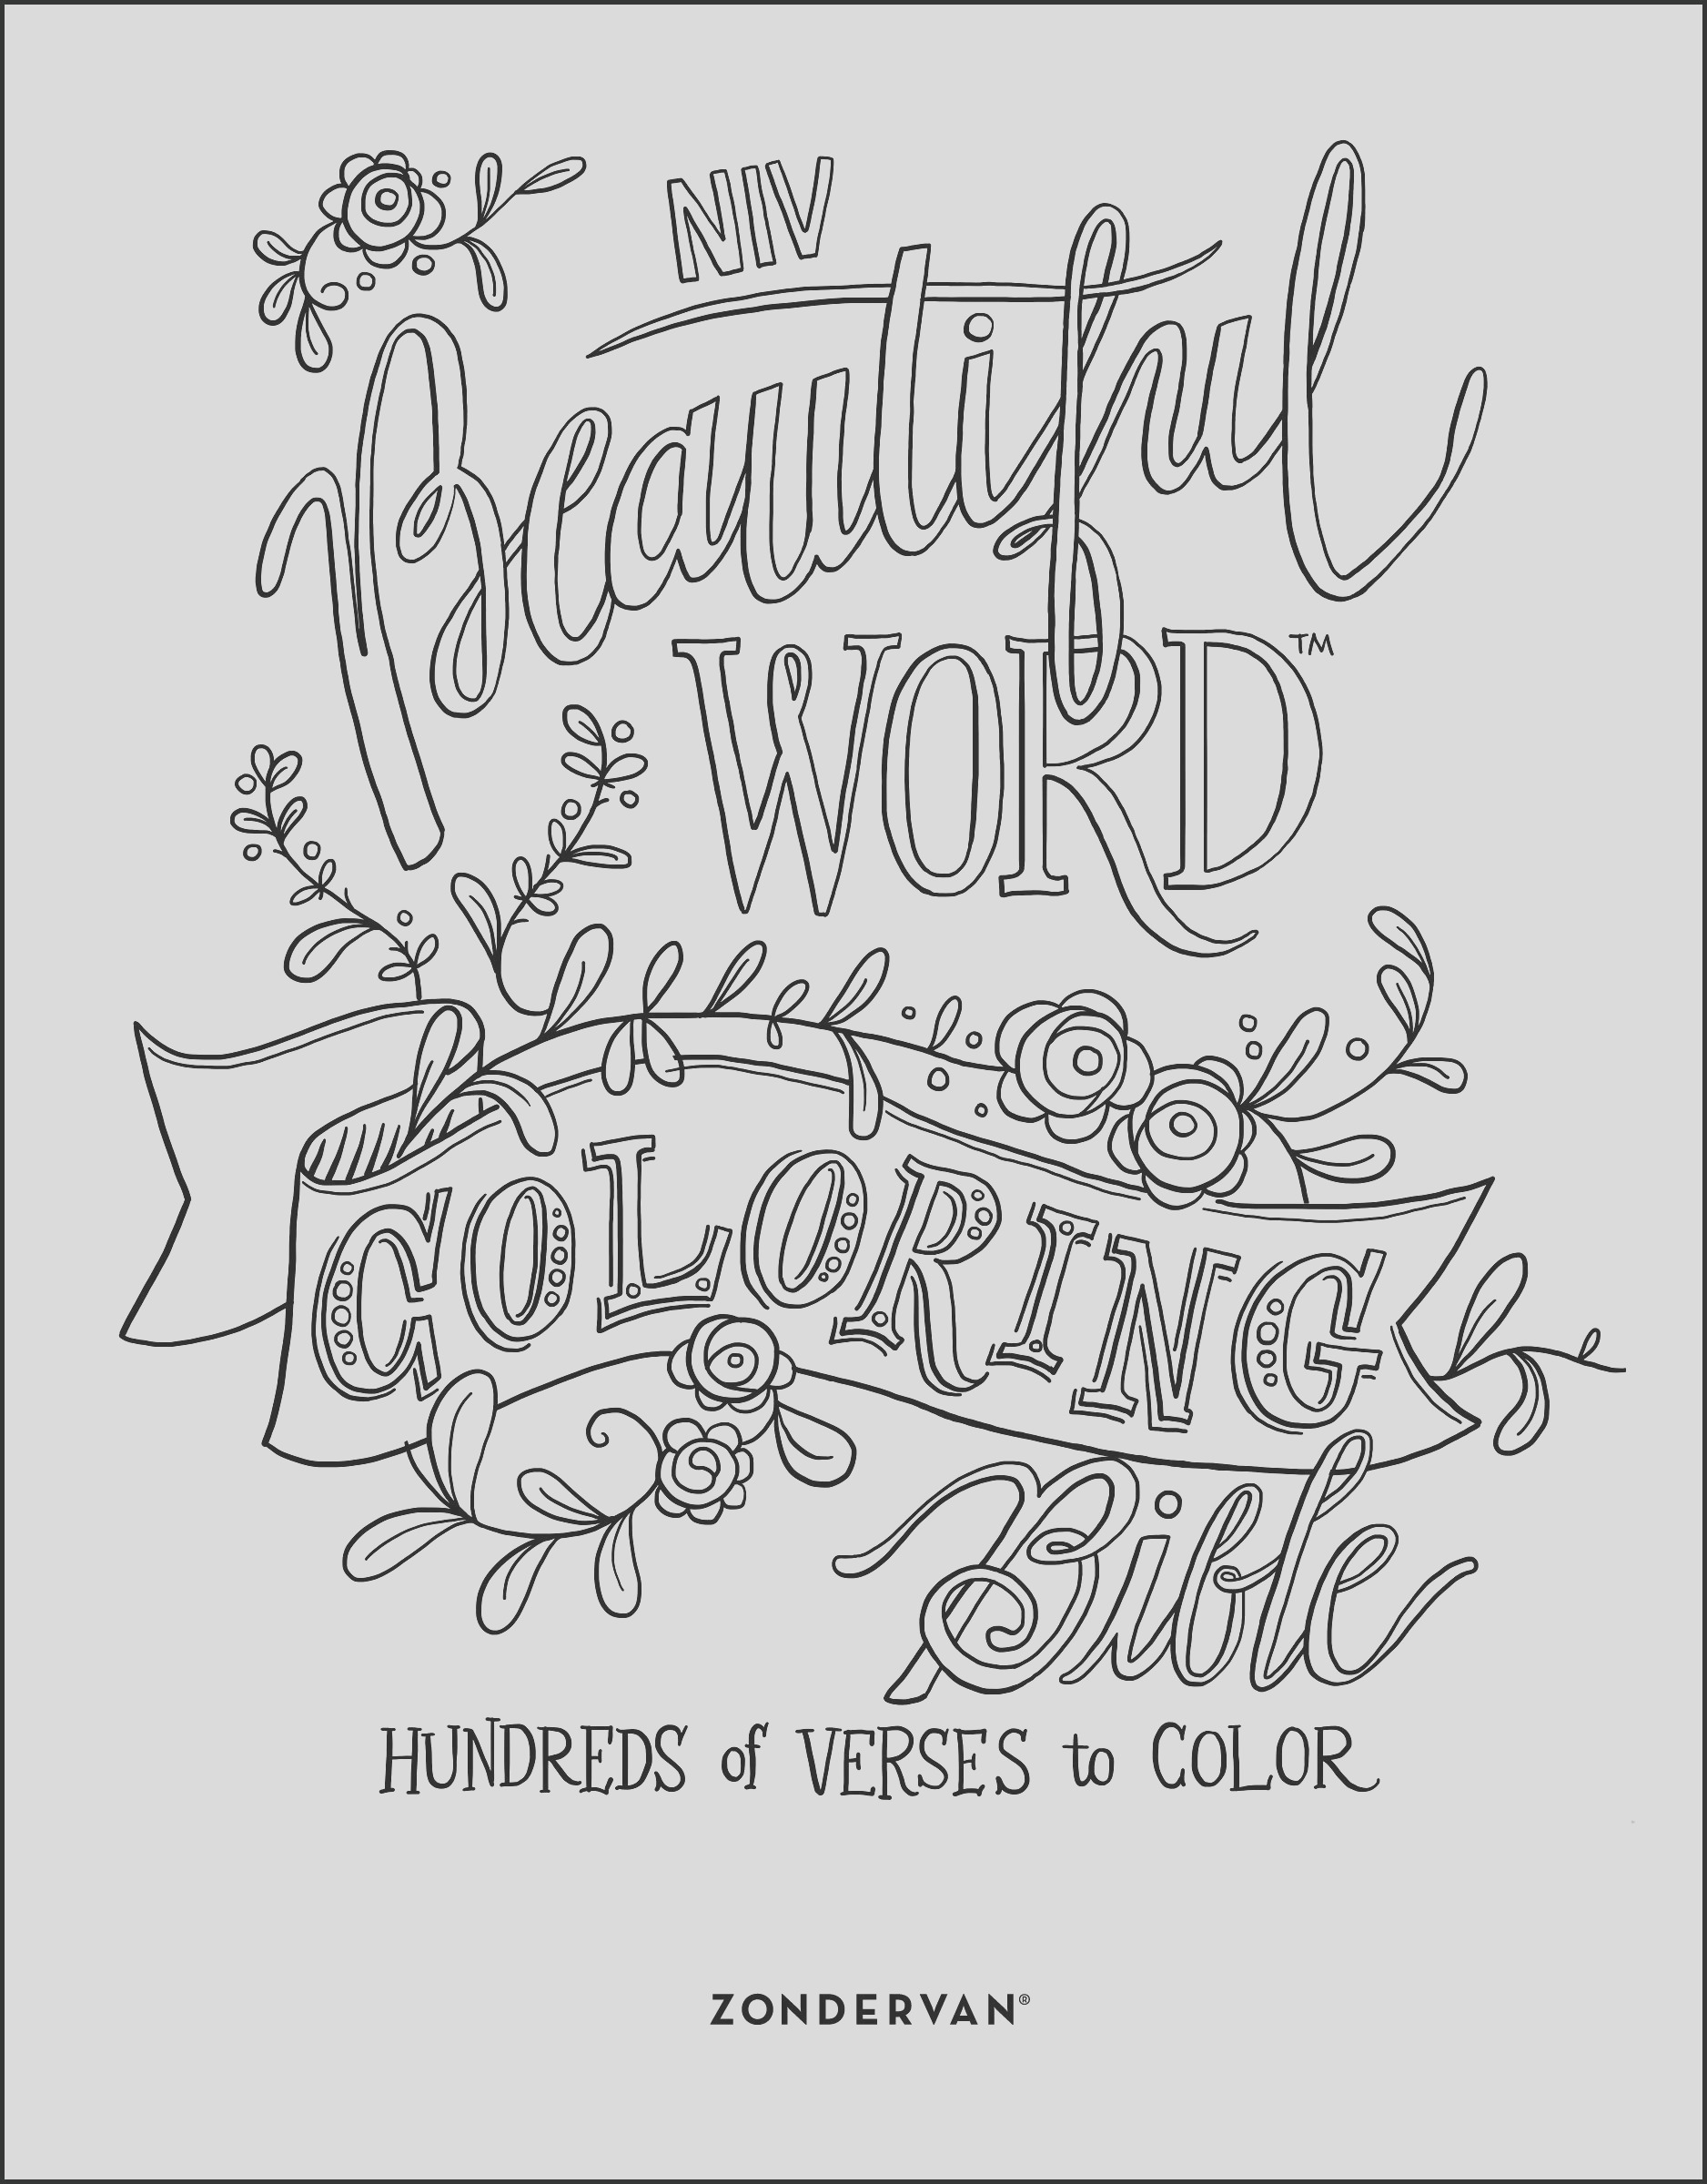 niv beautiful word coloring bible hardcover hundreds of verses to color